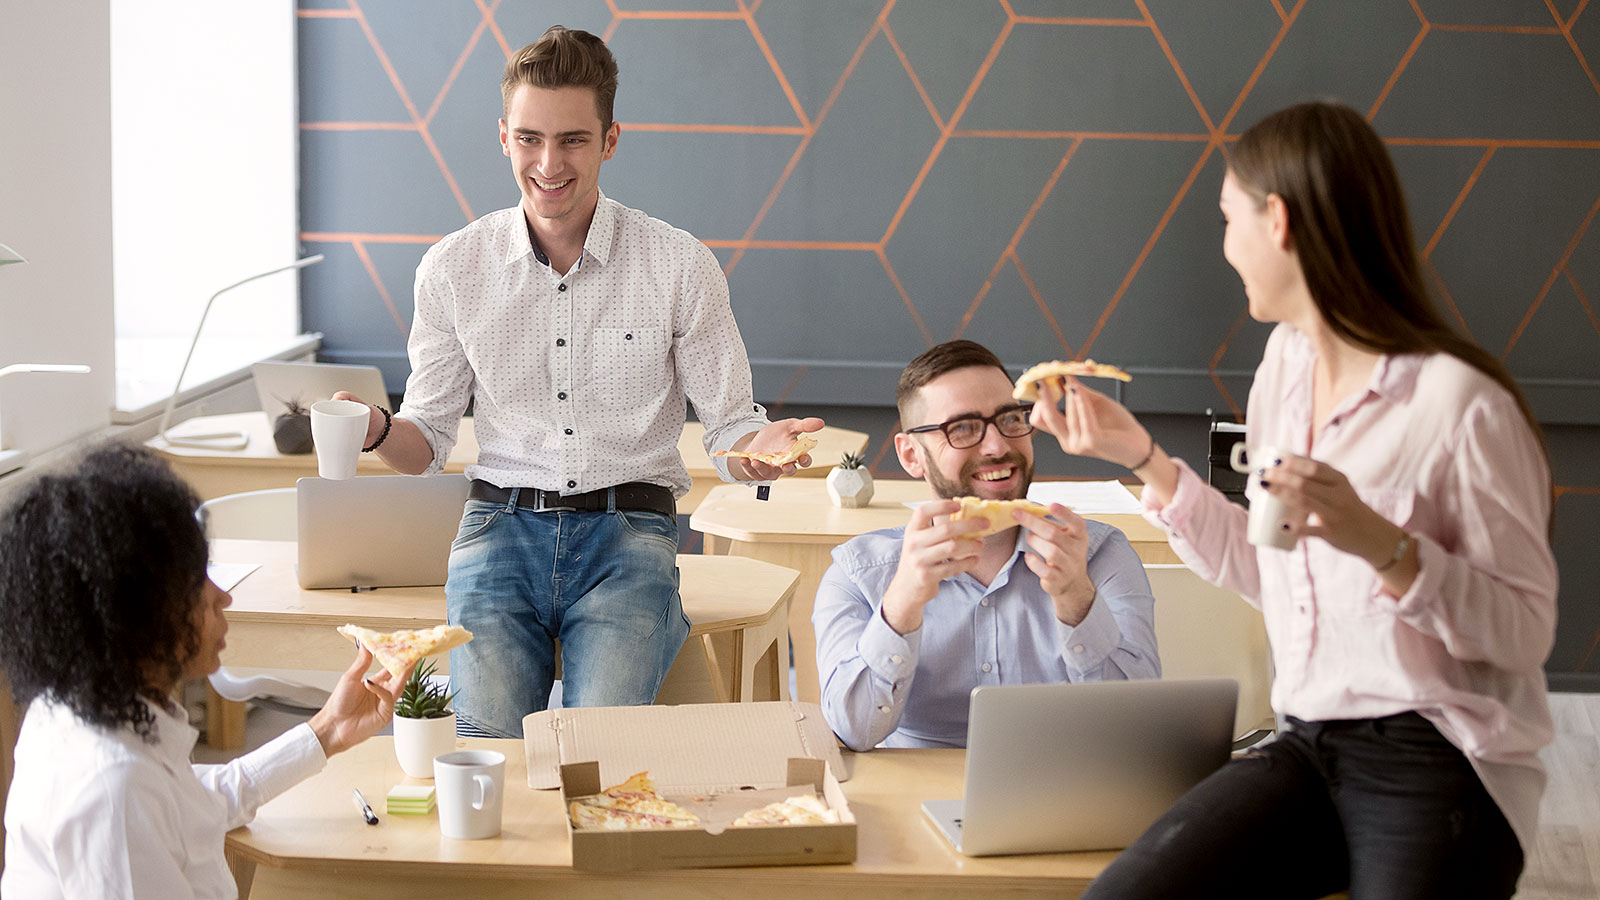 5 research-backed reasons why you need work friends (and how to go about making some)